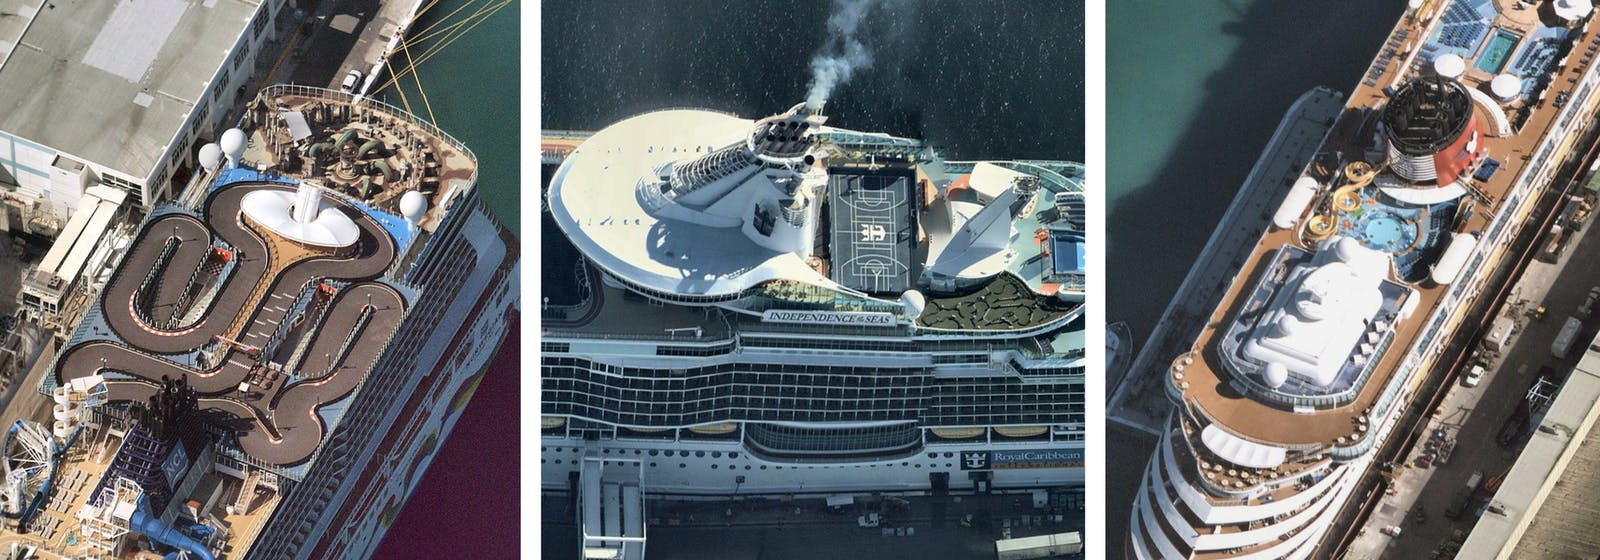 Less Cruises, Less Pollution